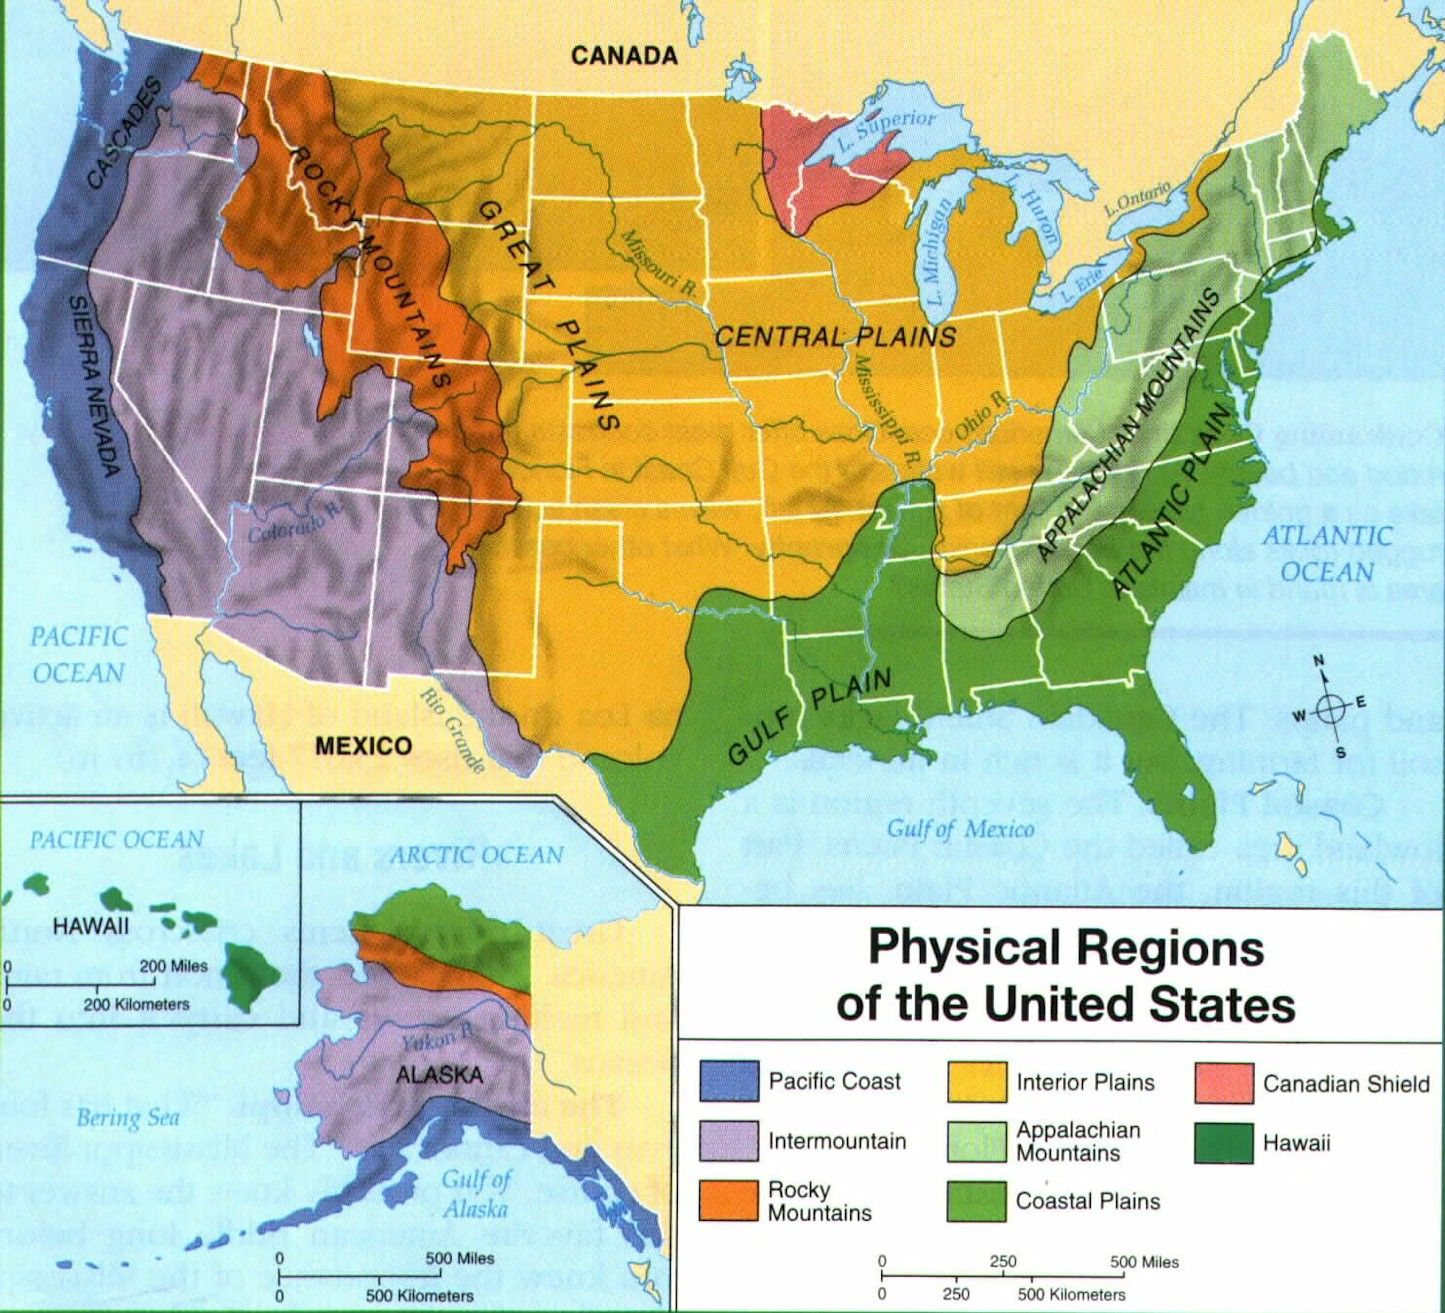 Us Physical Region Map Central Plains: thunderstorms tend to form more frequently at